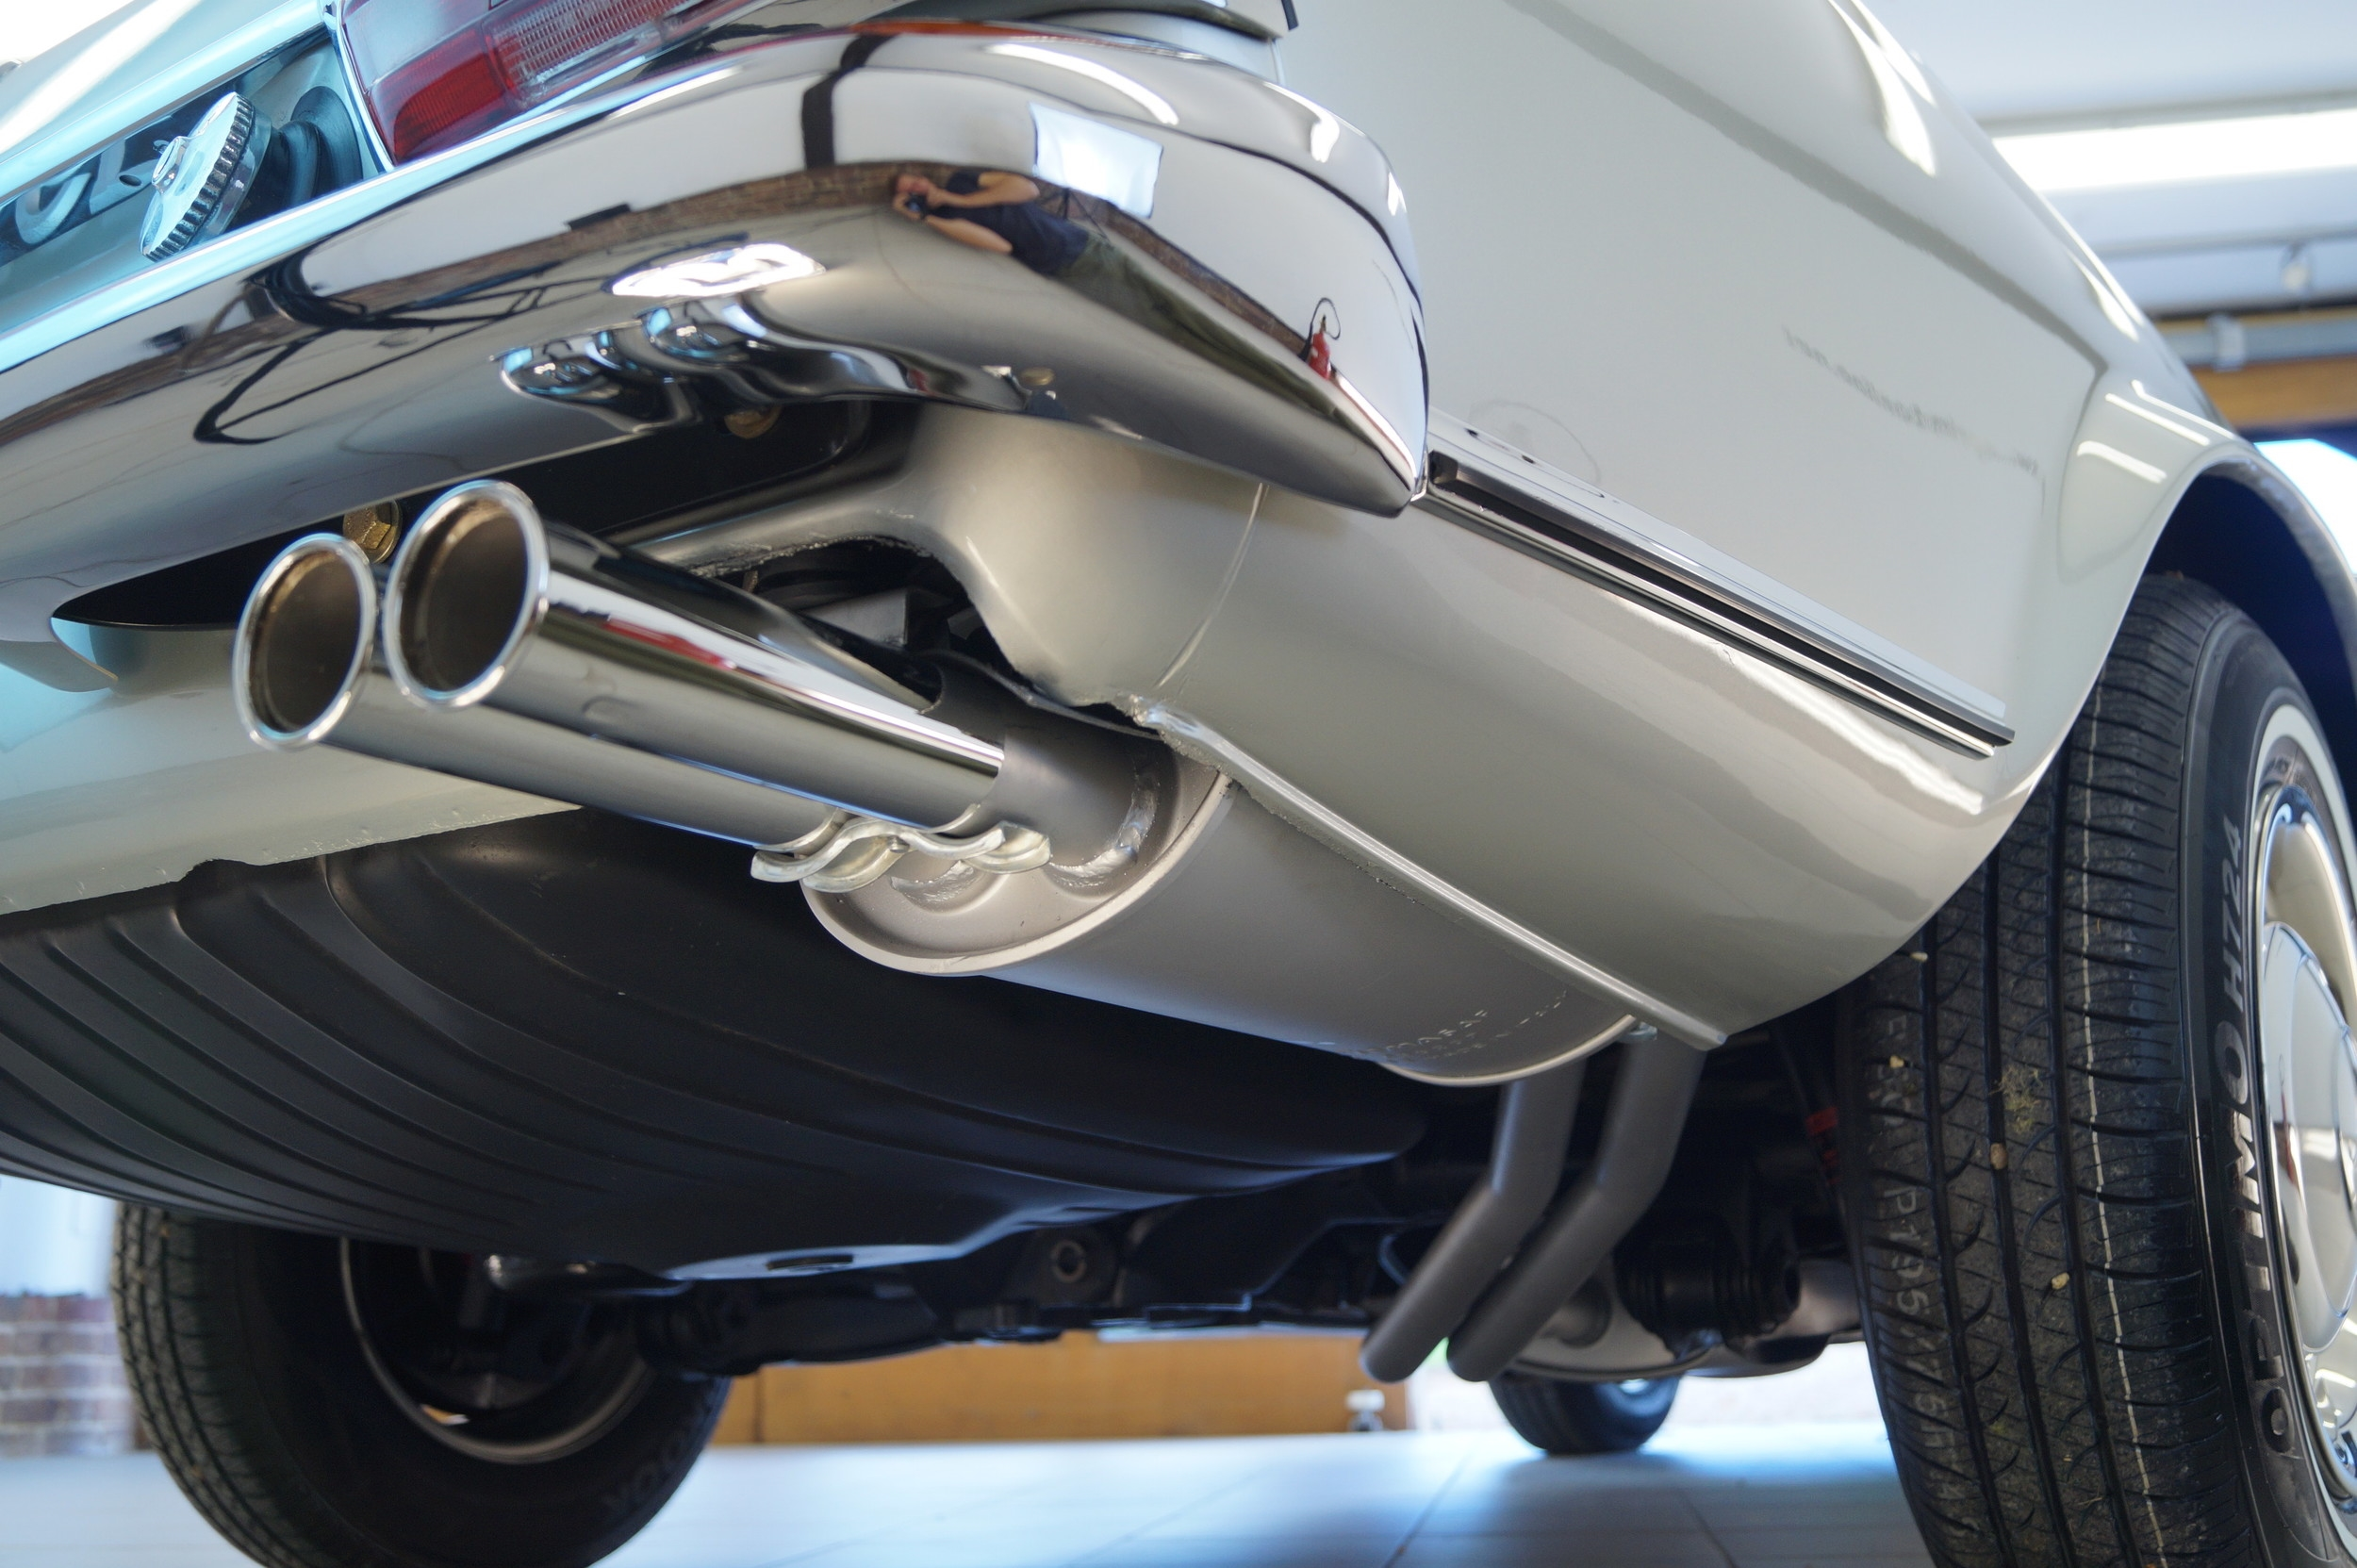 all new seam welded exhaust , bumpers, and detailed underside